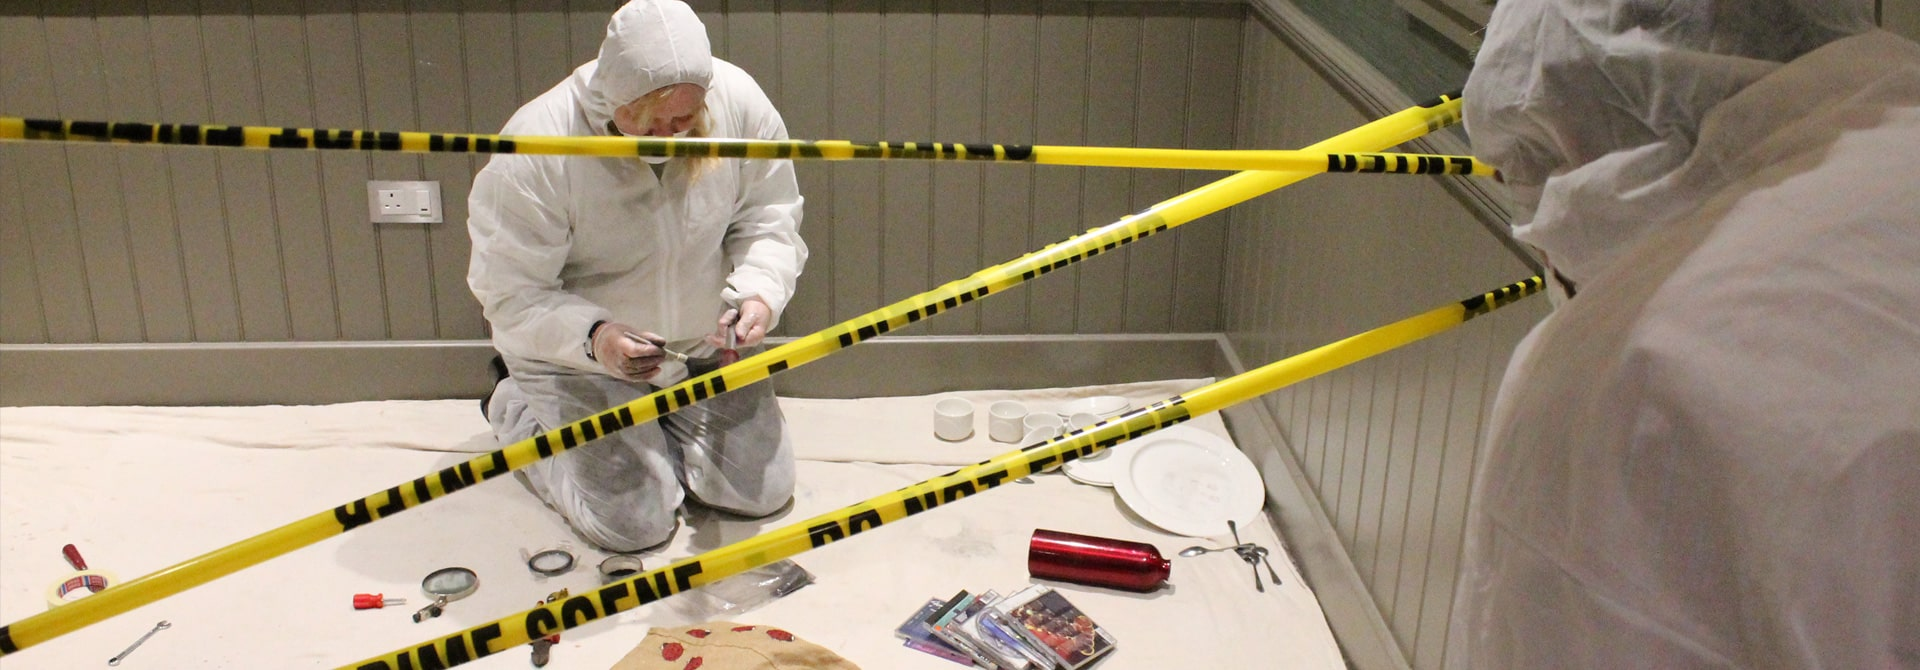 Crime Scene Cleanup Services in Madison